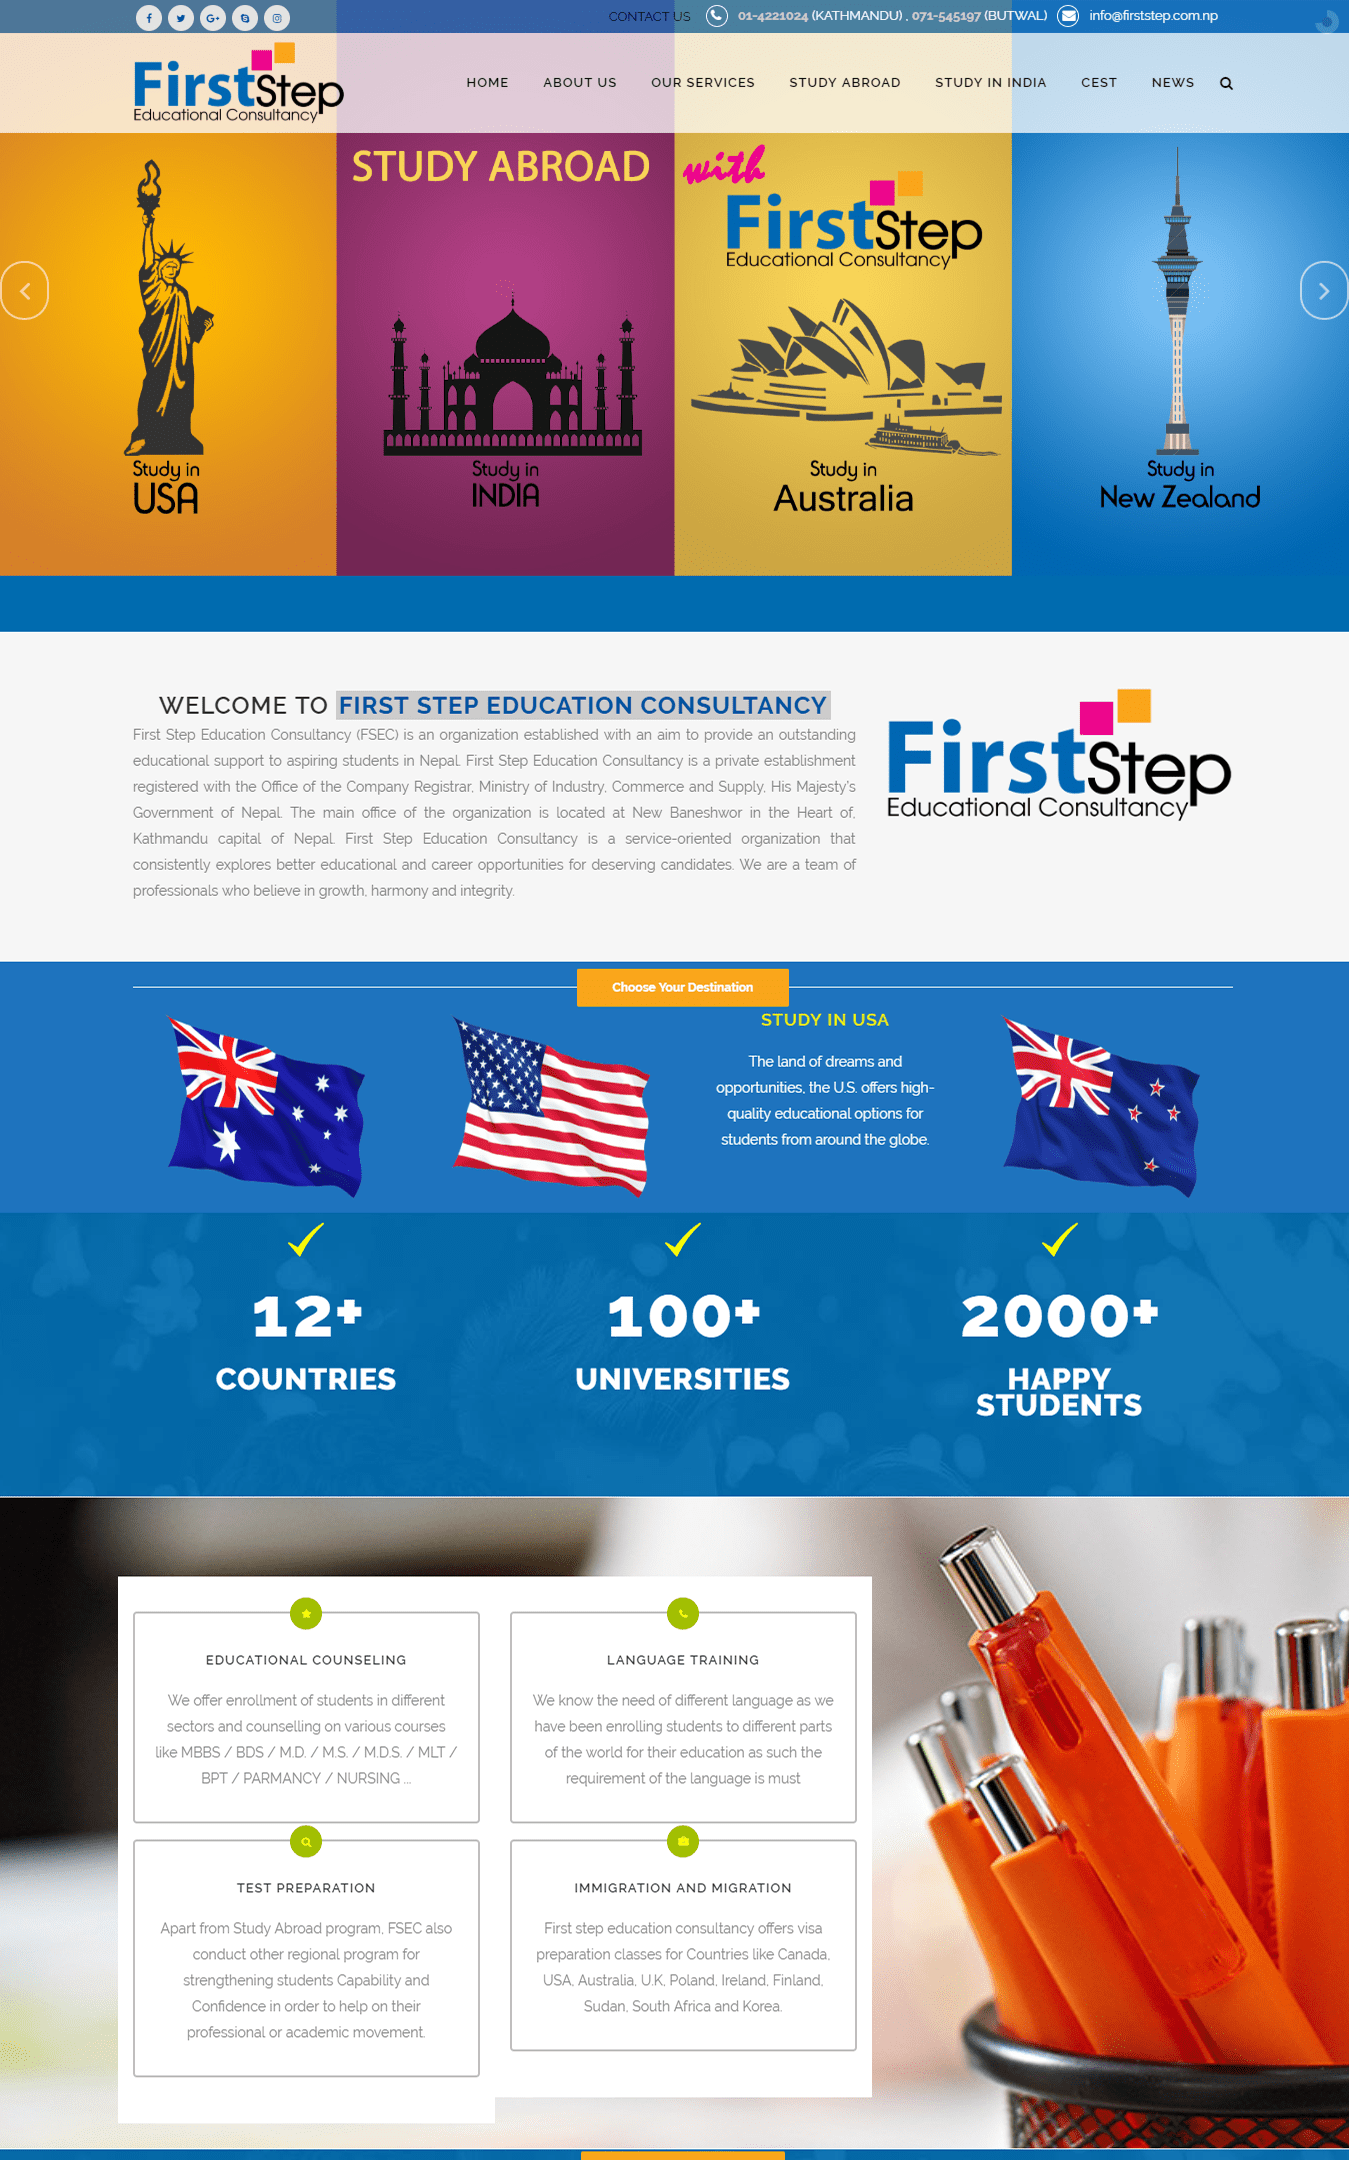 First Step Education Consultancy